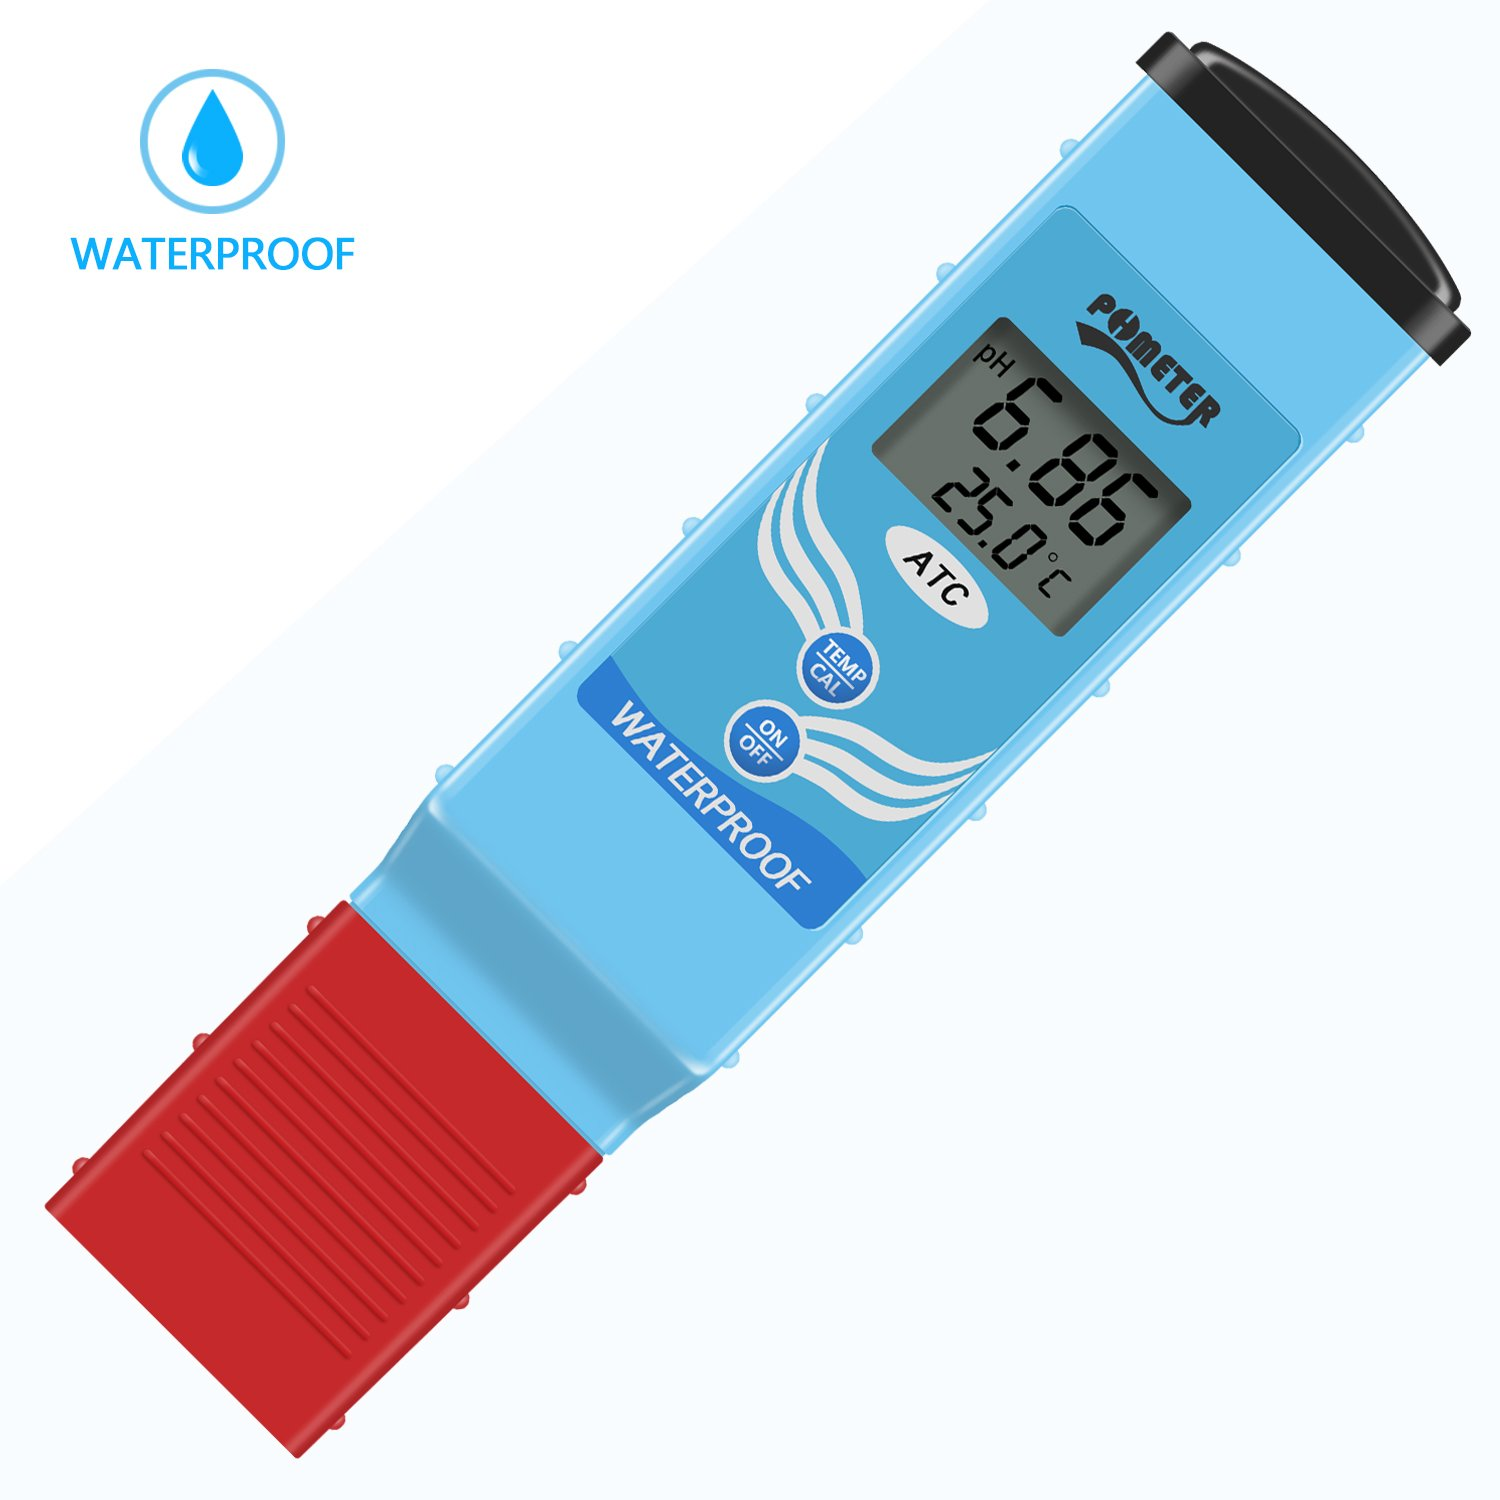 Digital pH Meter, Jellas PH-097 Top-Rated Waterproof pH/Temperature Tester for Water Quality Test - Dual Level LCD Display/Auto Calibration/ATC Function